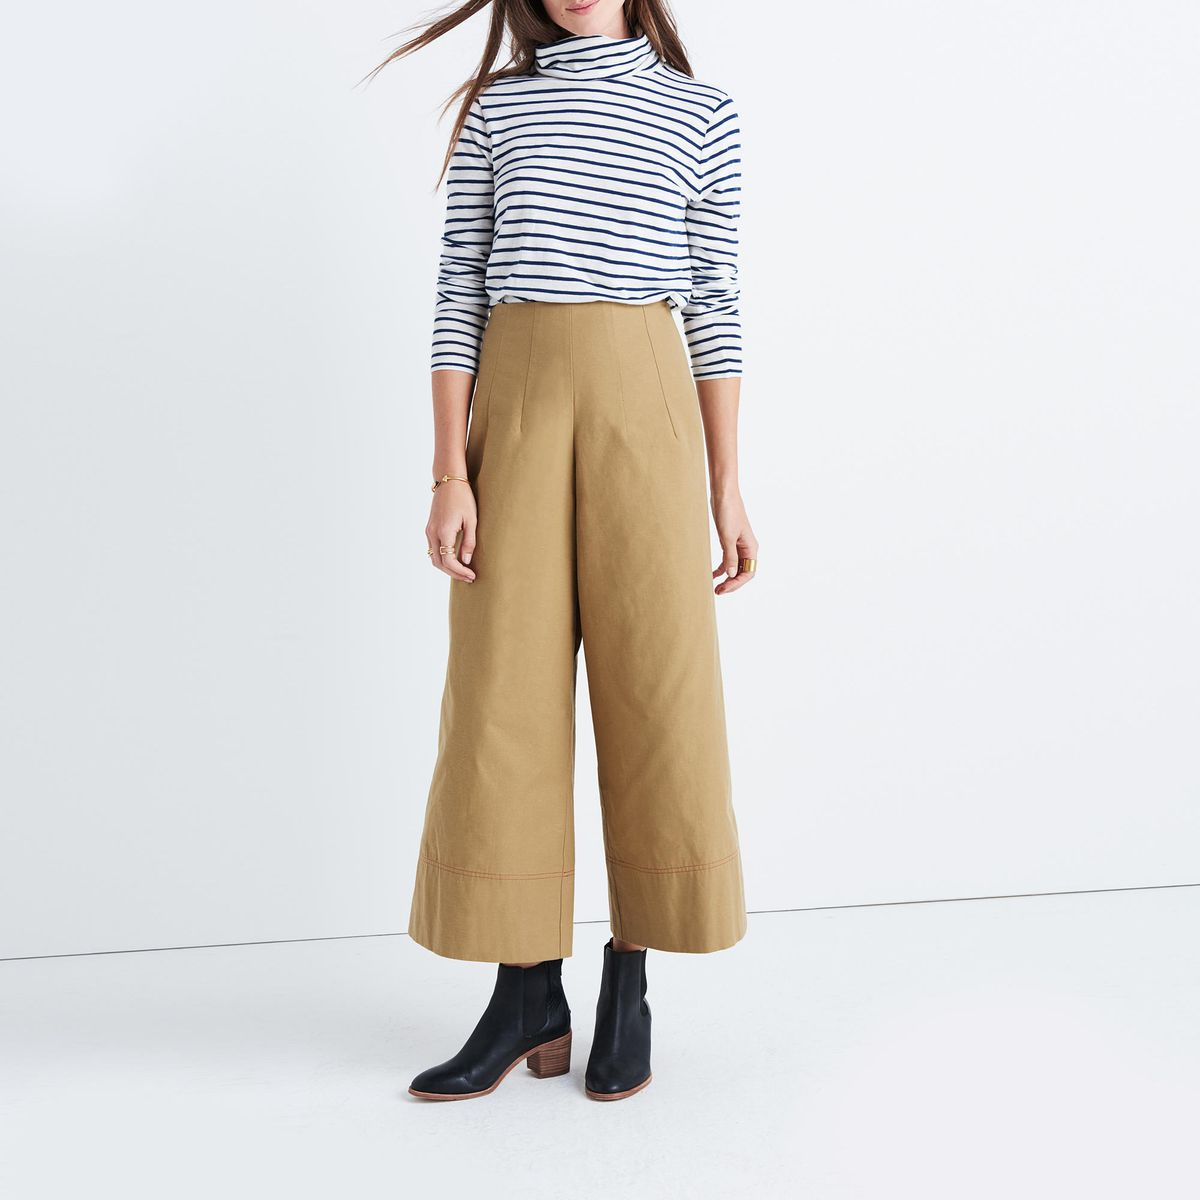 6770897e2a Yes, You Can Wear Wide-Legged Pants Even If You're Short - Racked